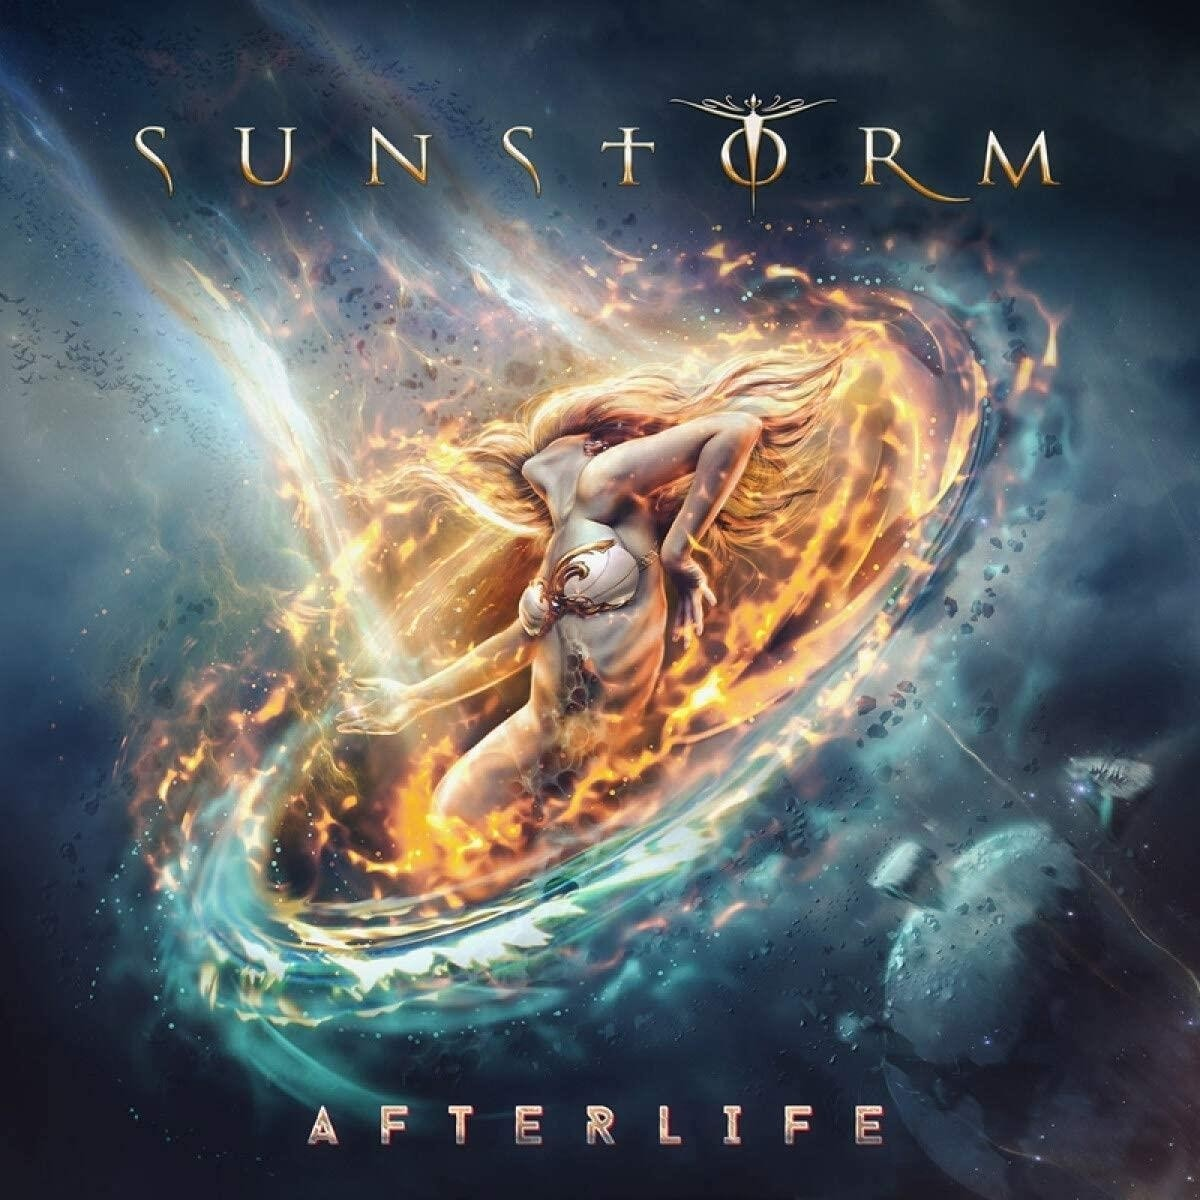 Sunstorm - Afterlife